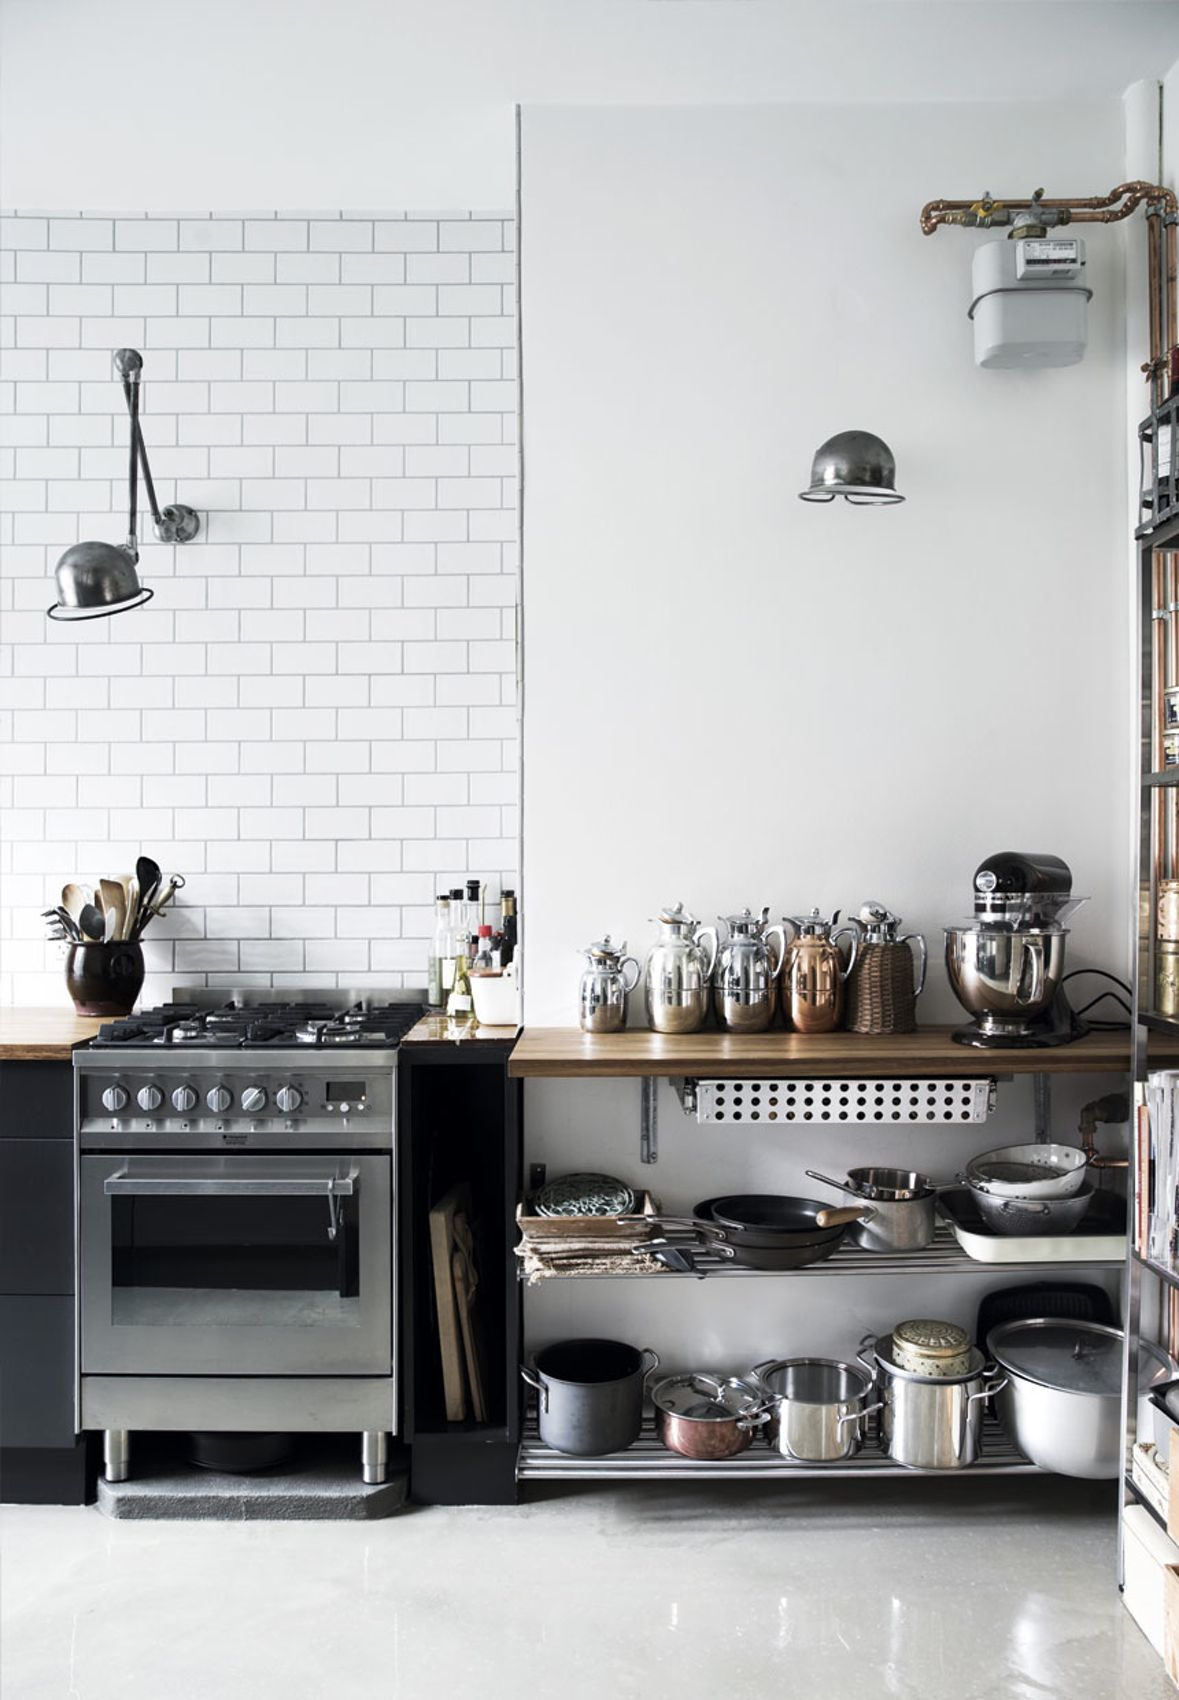 Industrial kitchen … | Adisree kitchens | Pinterest | Industrial ...